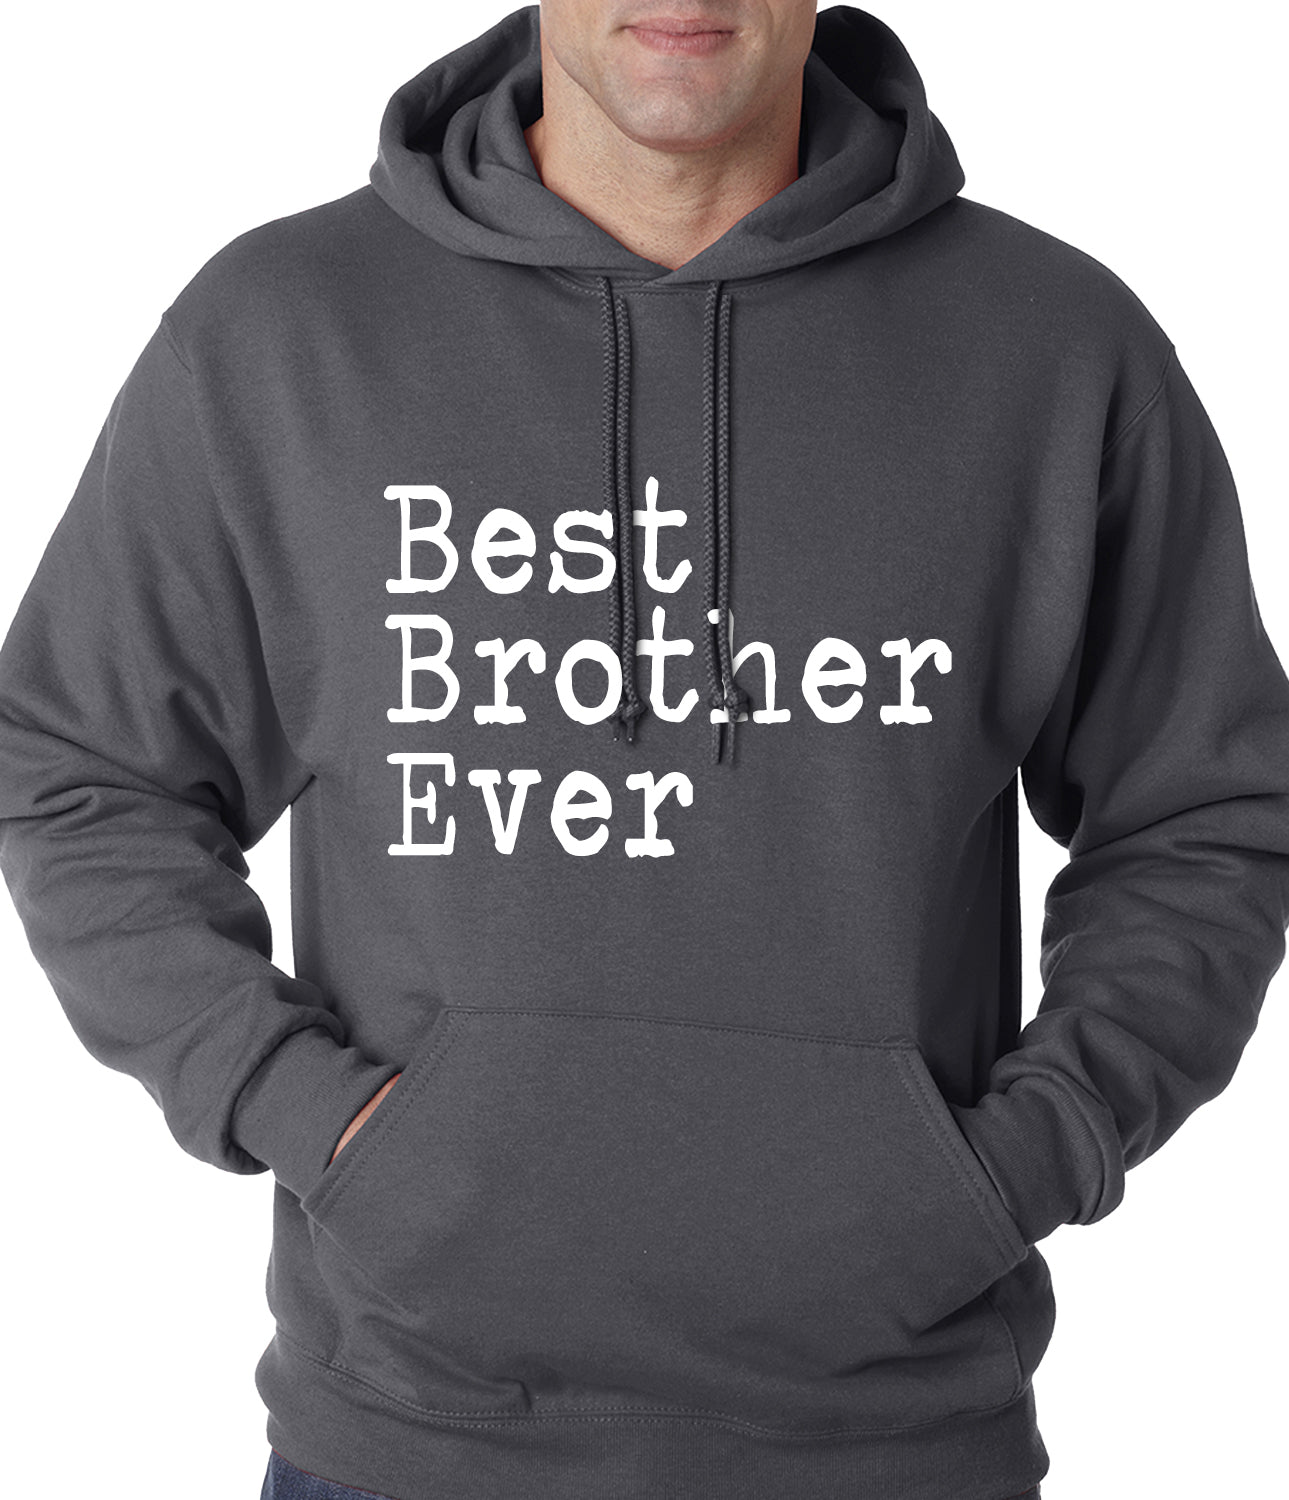 Best Brother Ever Adult Hoodie Brown